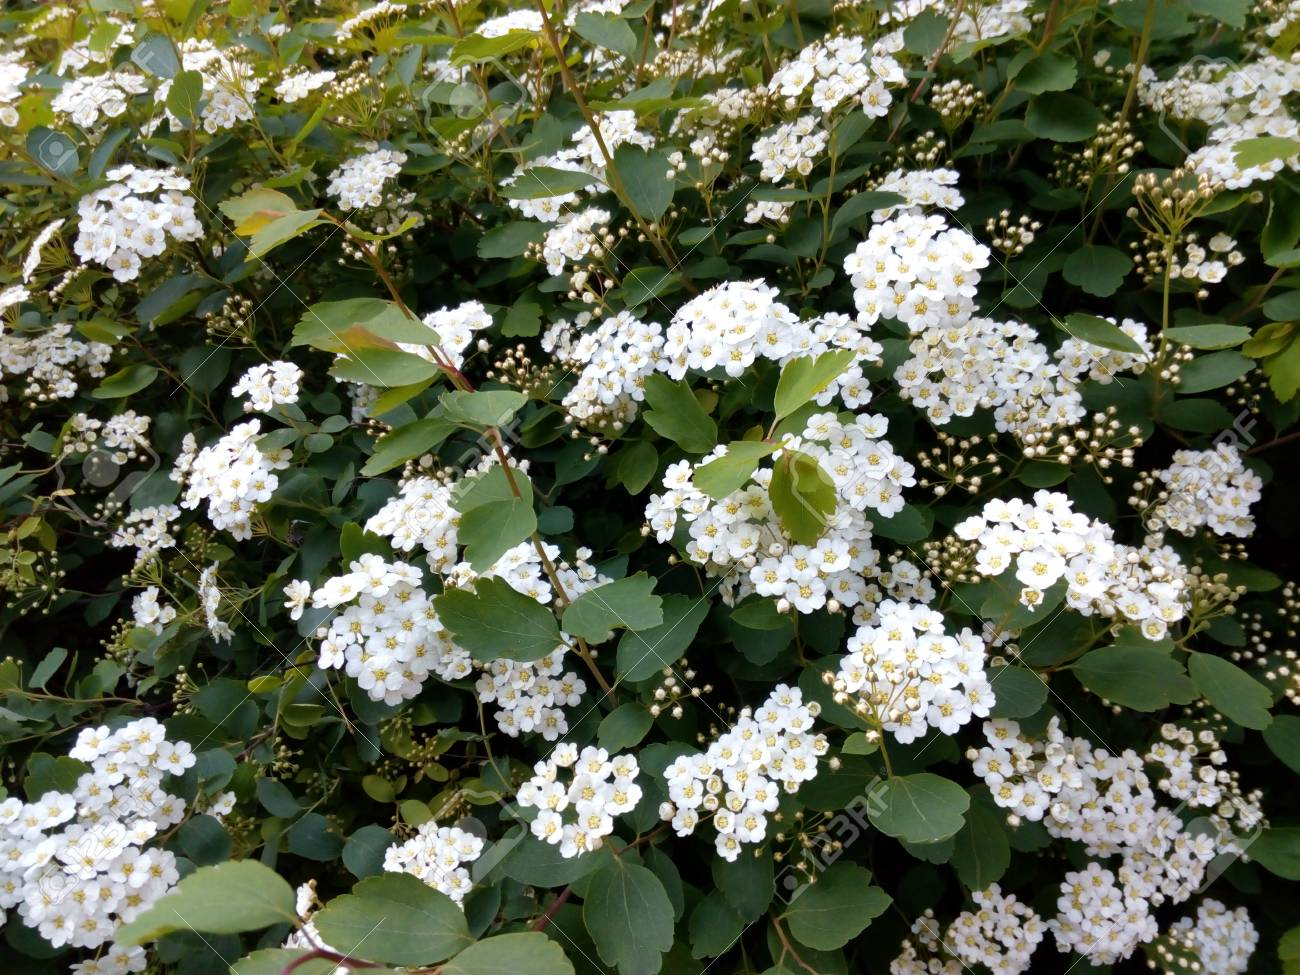 Spring green bush studded with small white flowers stock photo spring green bush studded with small white flowers stock photo 69031108 mightylinksfo